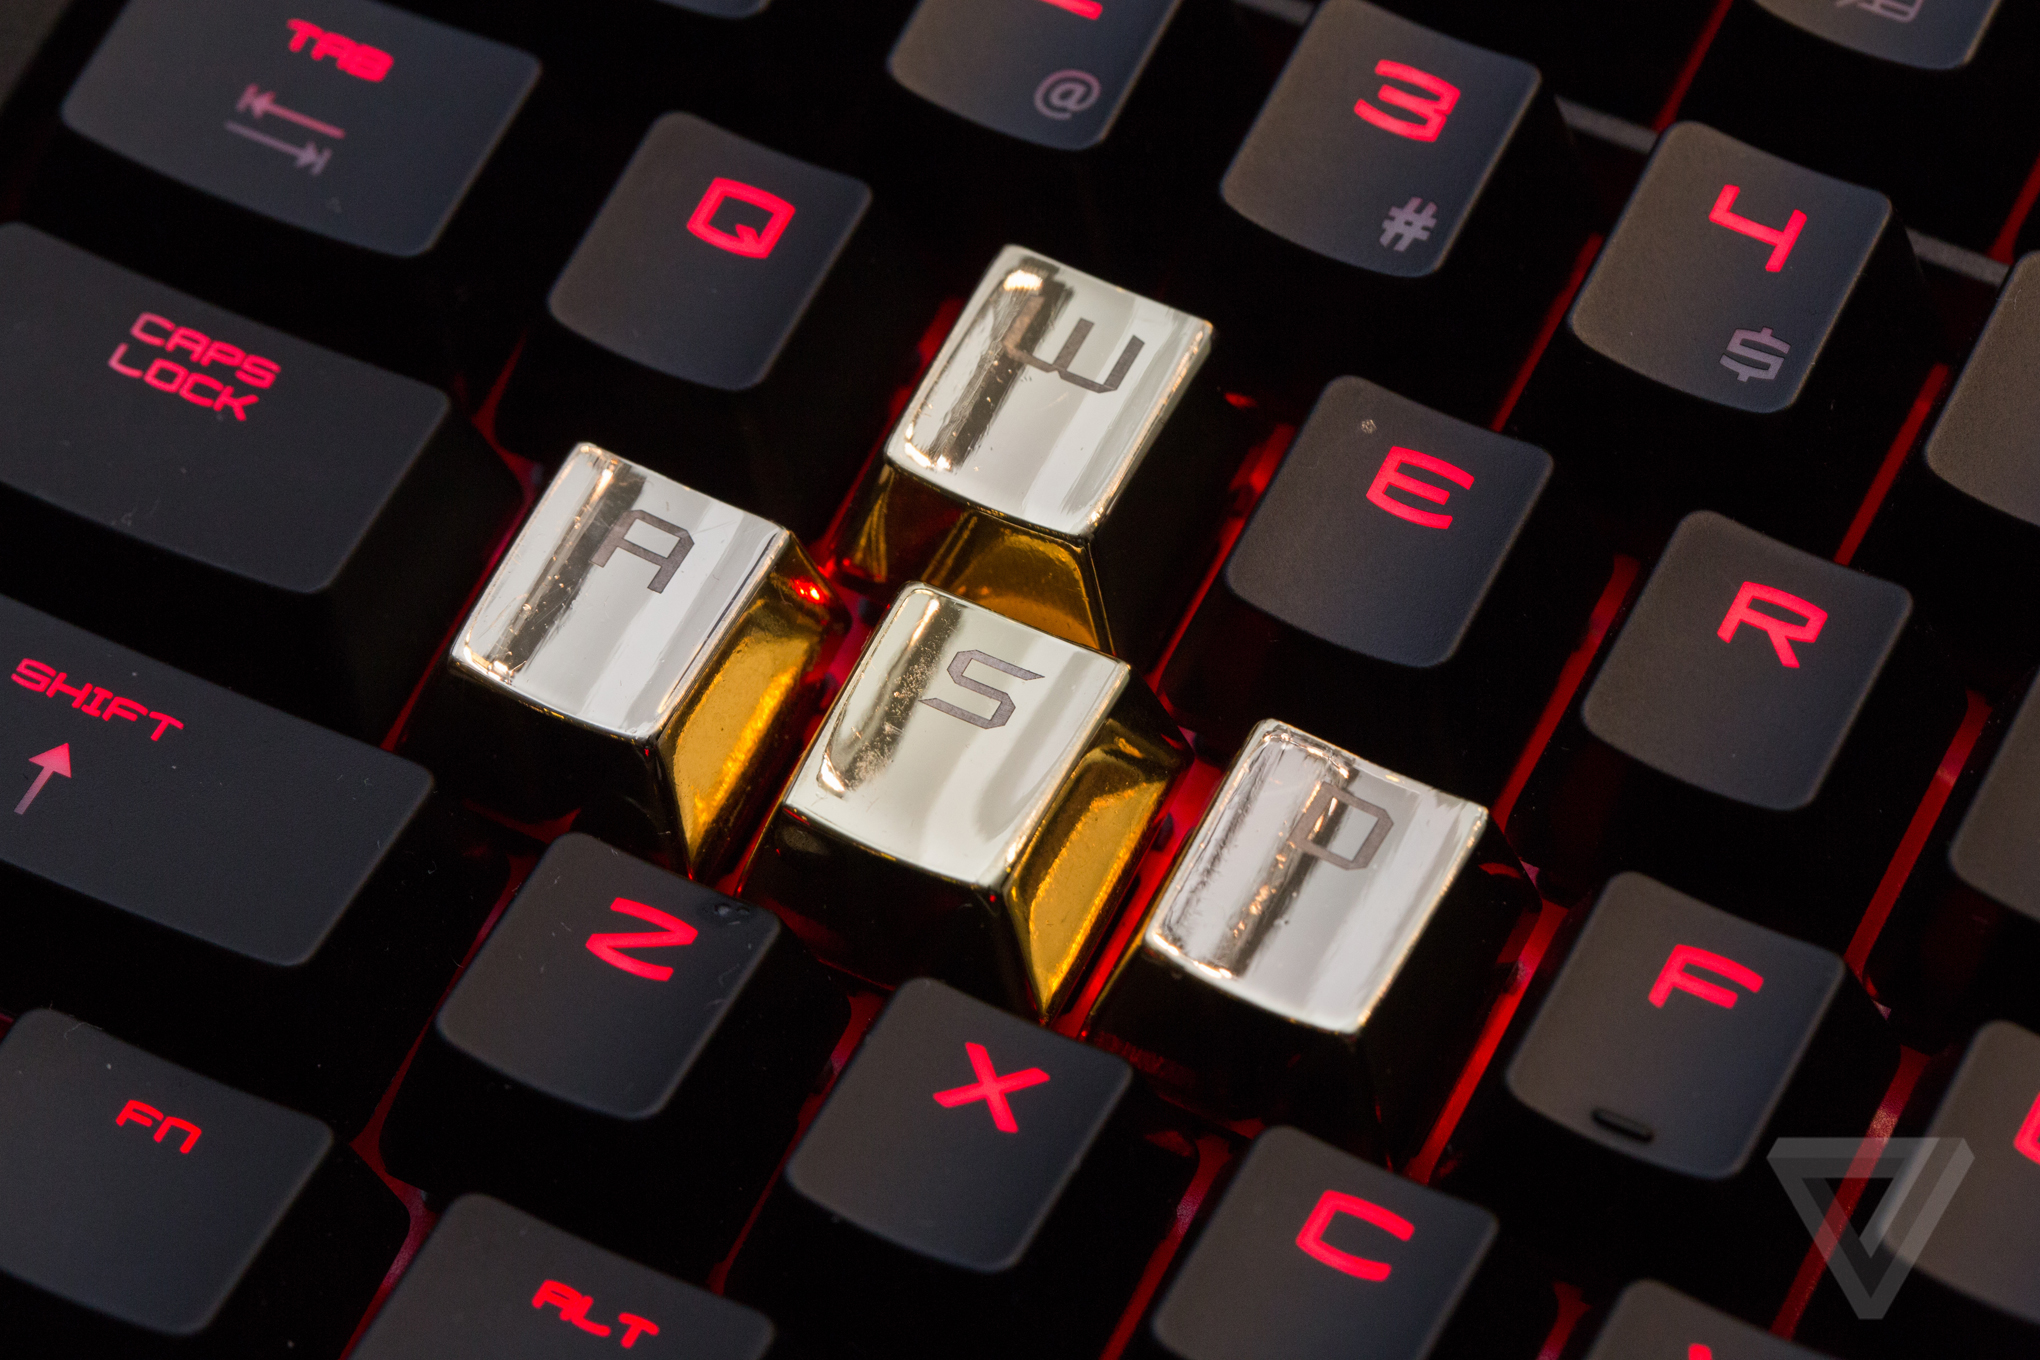 This Is Msi S Insane Mechanical Keyboard Laptop The Verge